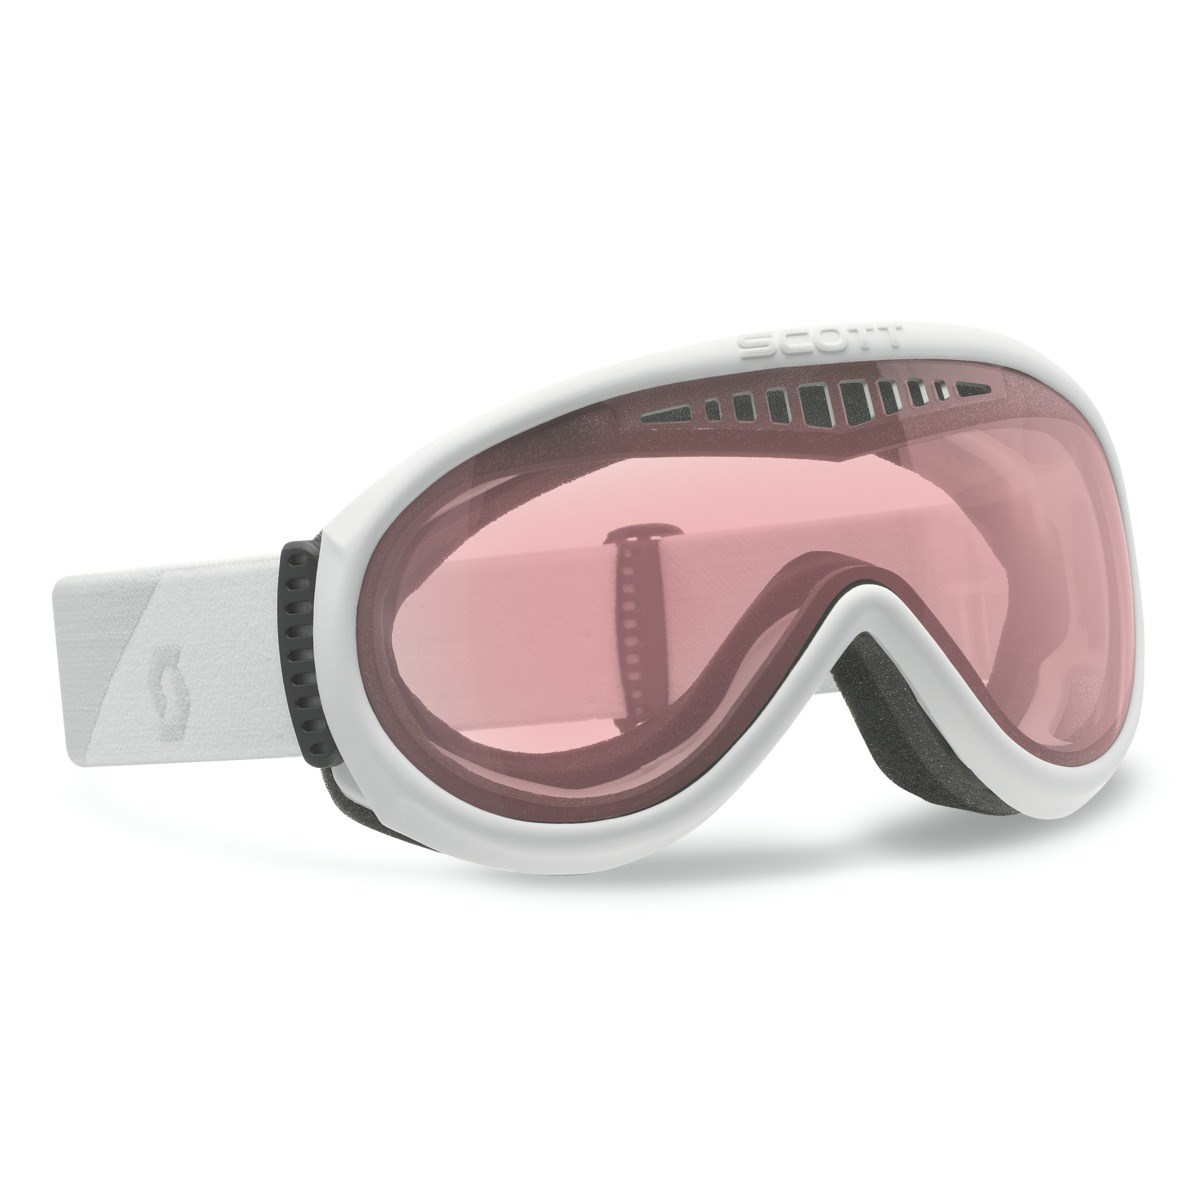 01c68dd48d8 Scott Unlimited OTG Ski Goggles White Amplifier Lens. 0 (Be the first to  add a review!)